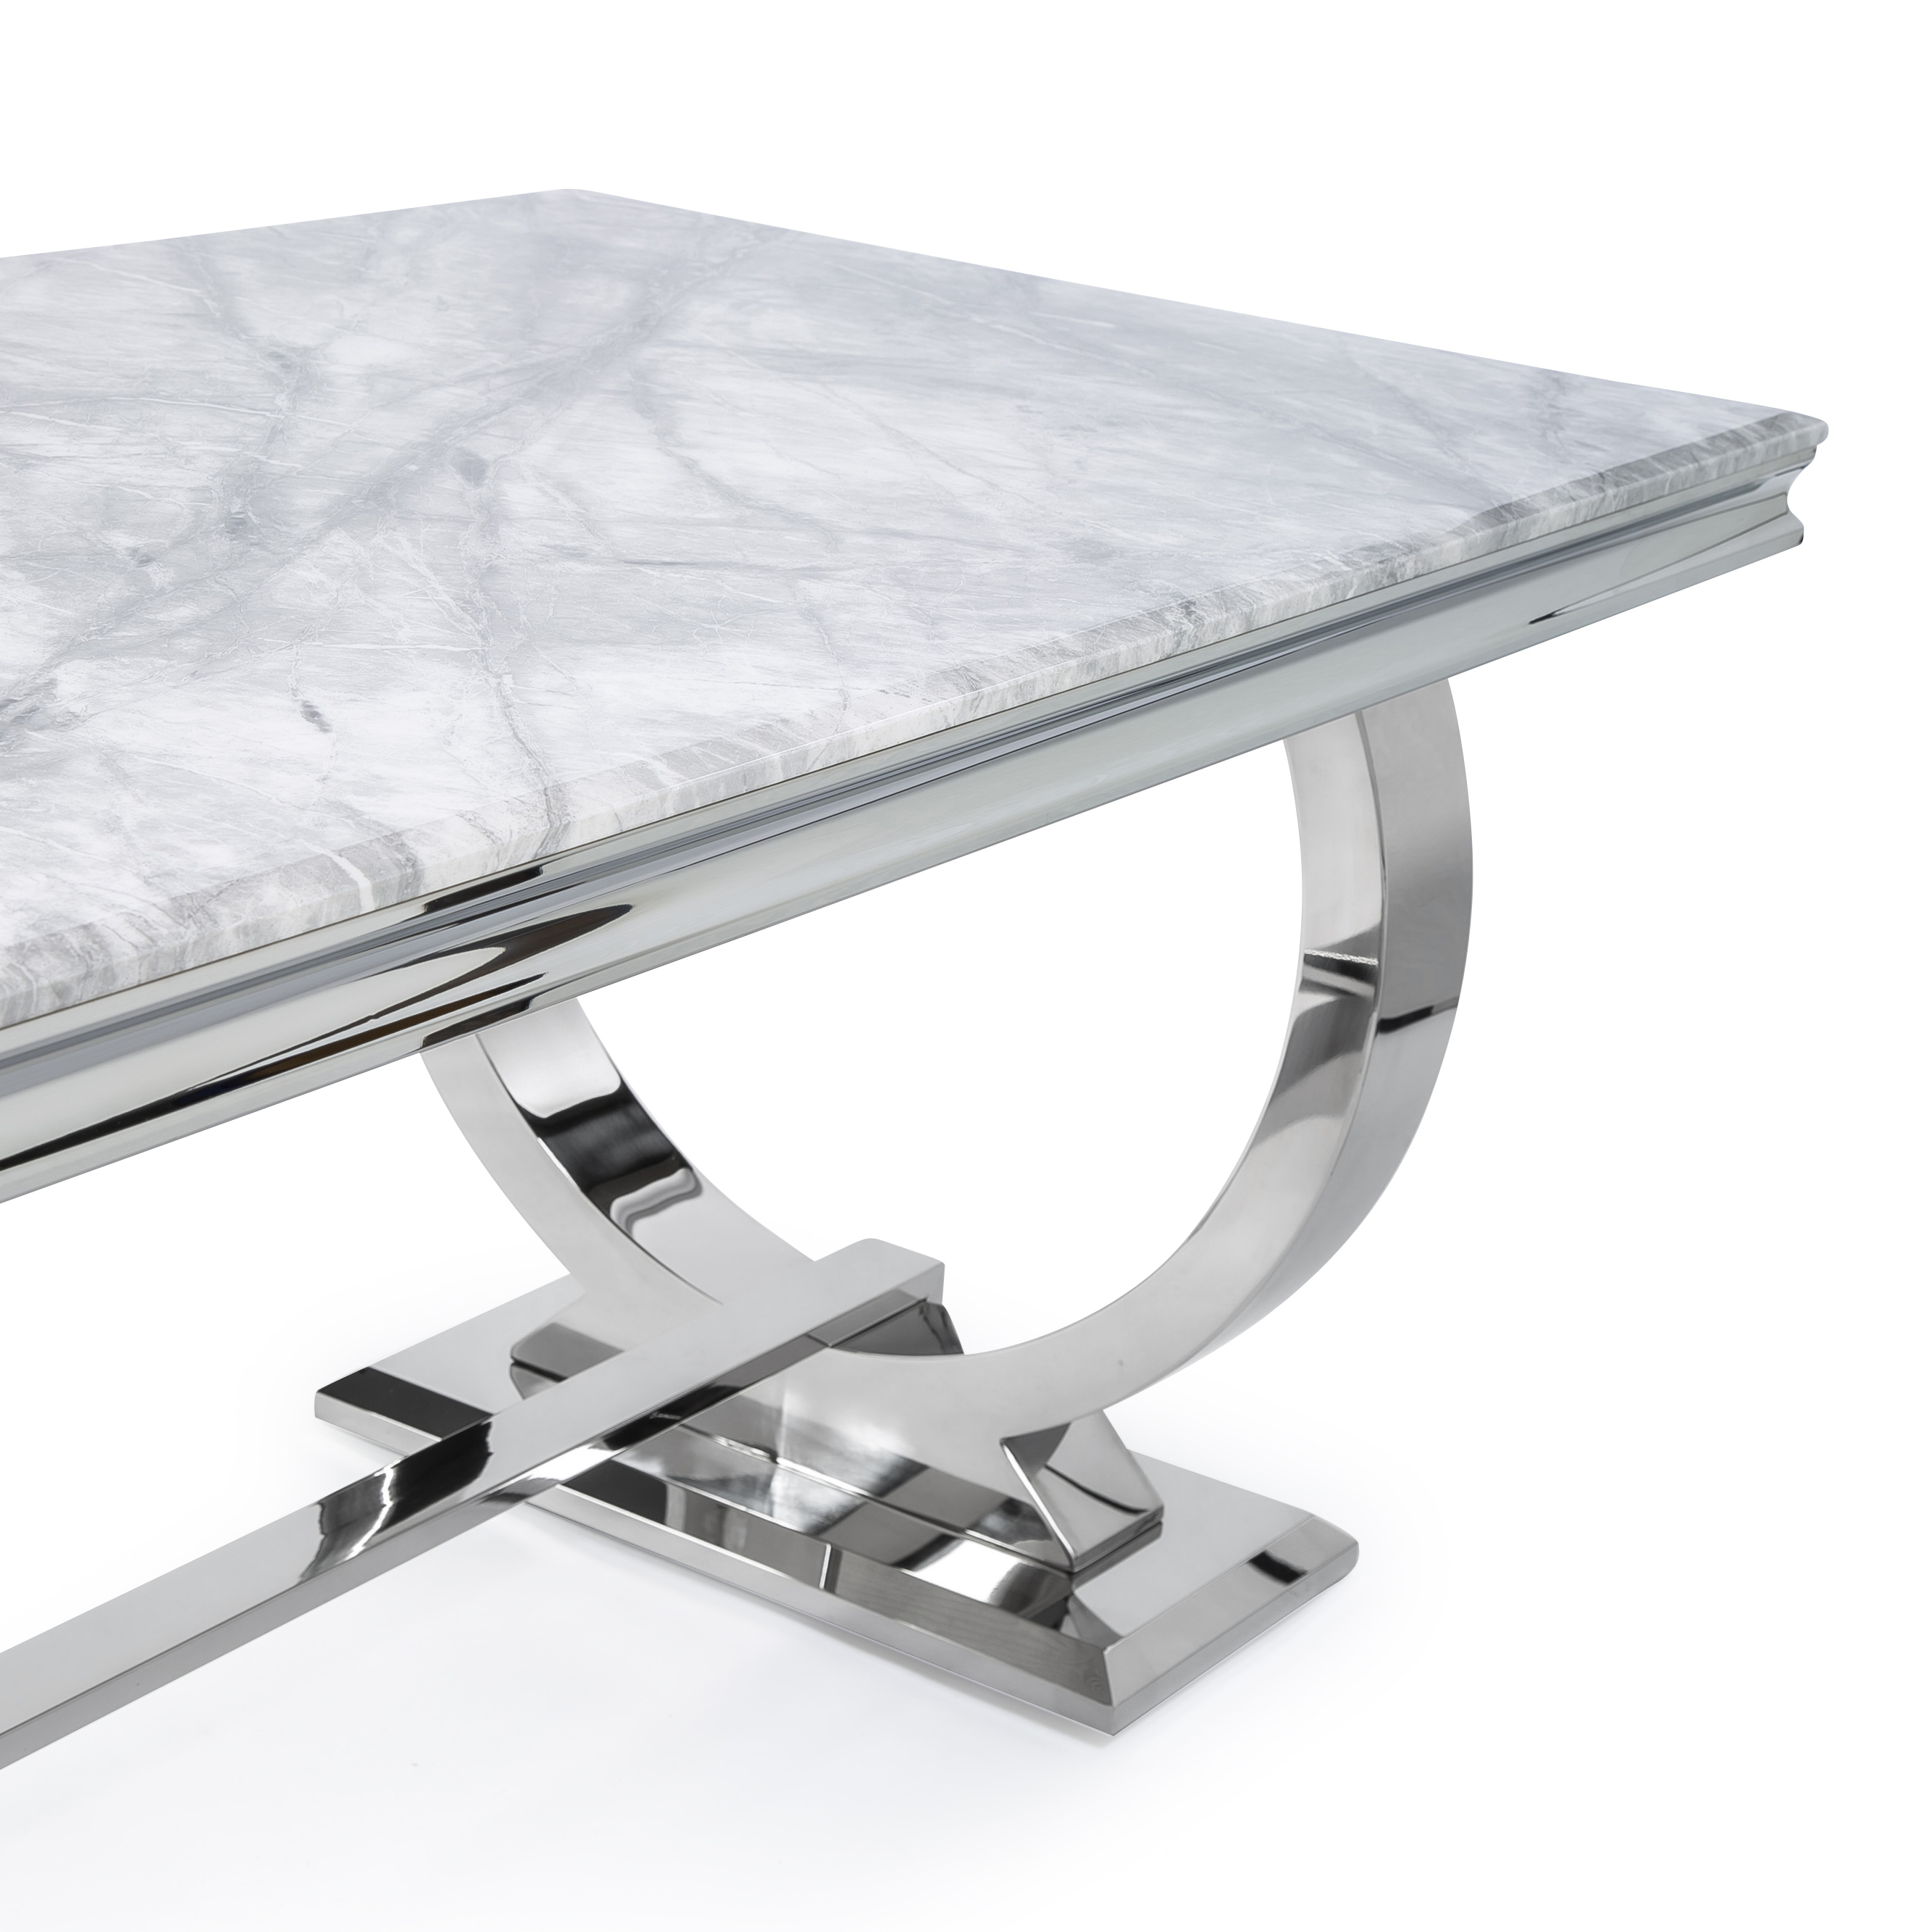 Siena 1.8M Grey Marble Polished Steel Dining Table